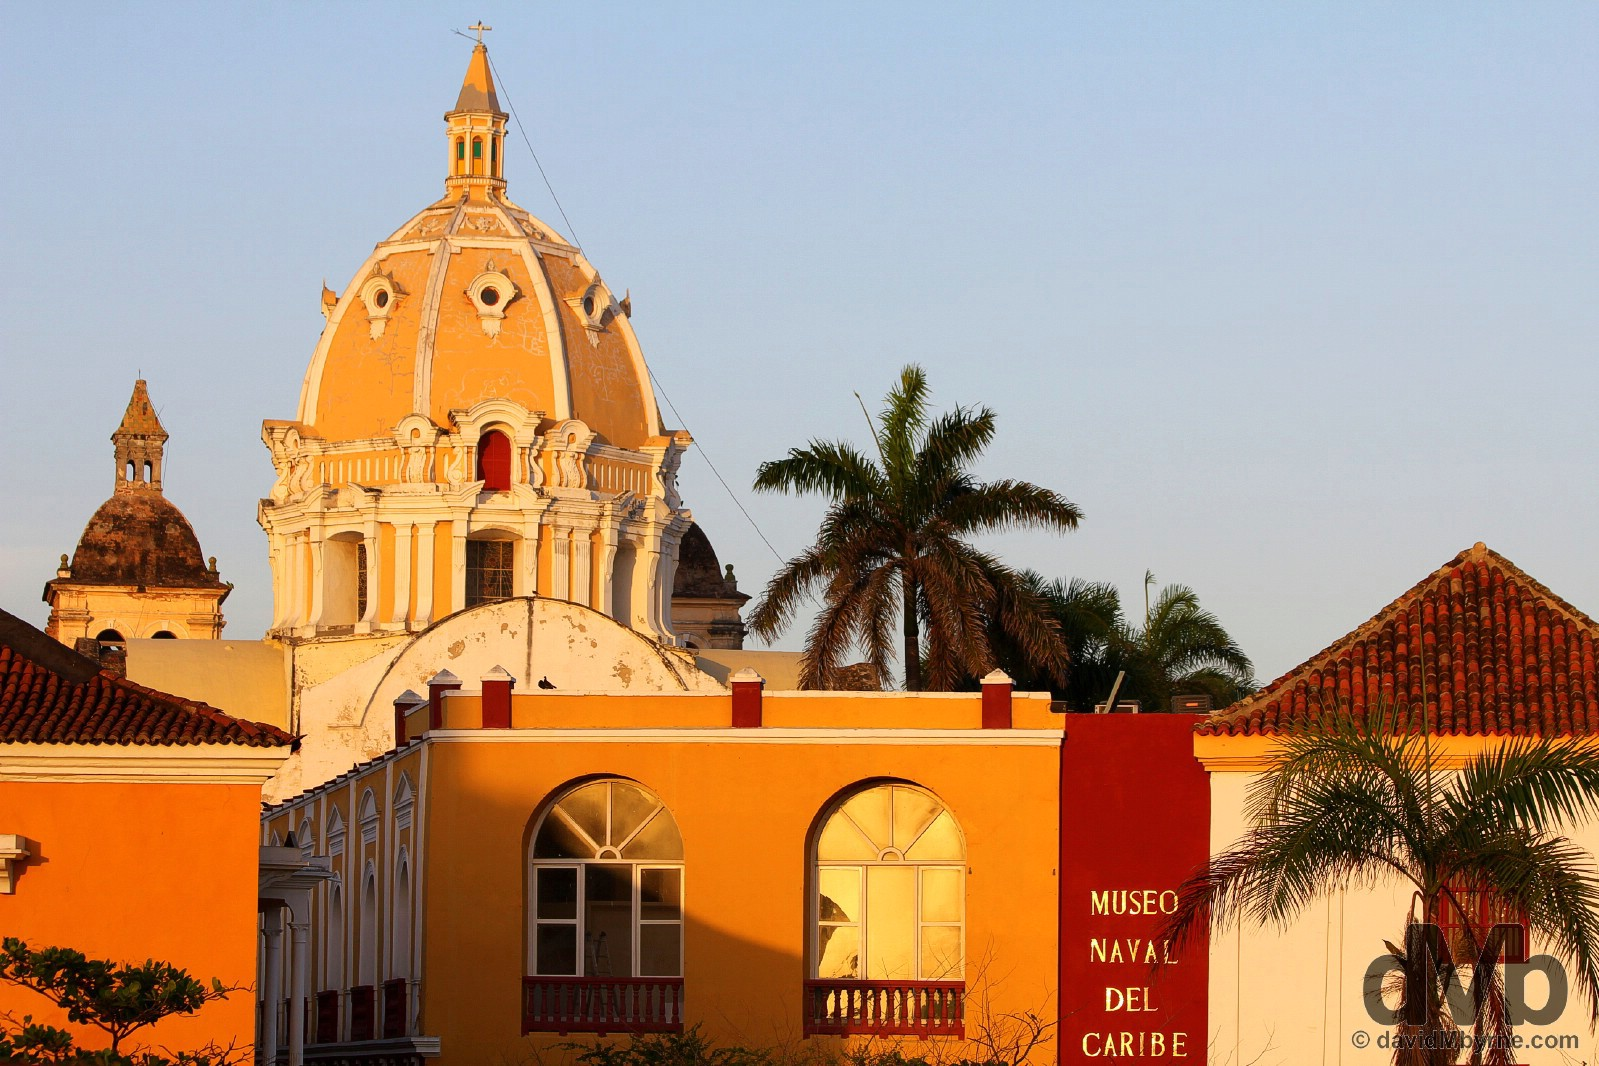 Sunset light on buildings of Old Town as seen from Las Murallas, the Old Town walls of Cartagena, Colombia. June 24, 2015.